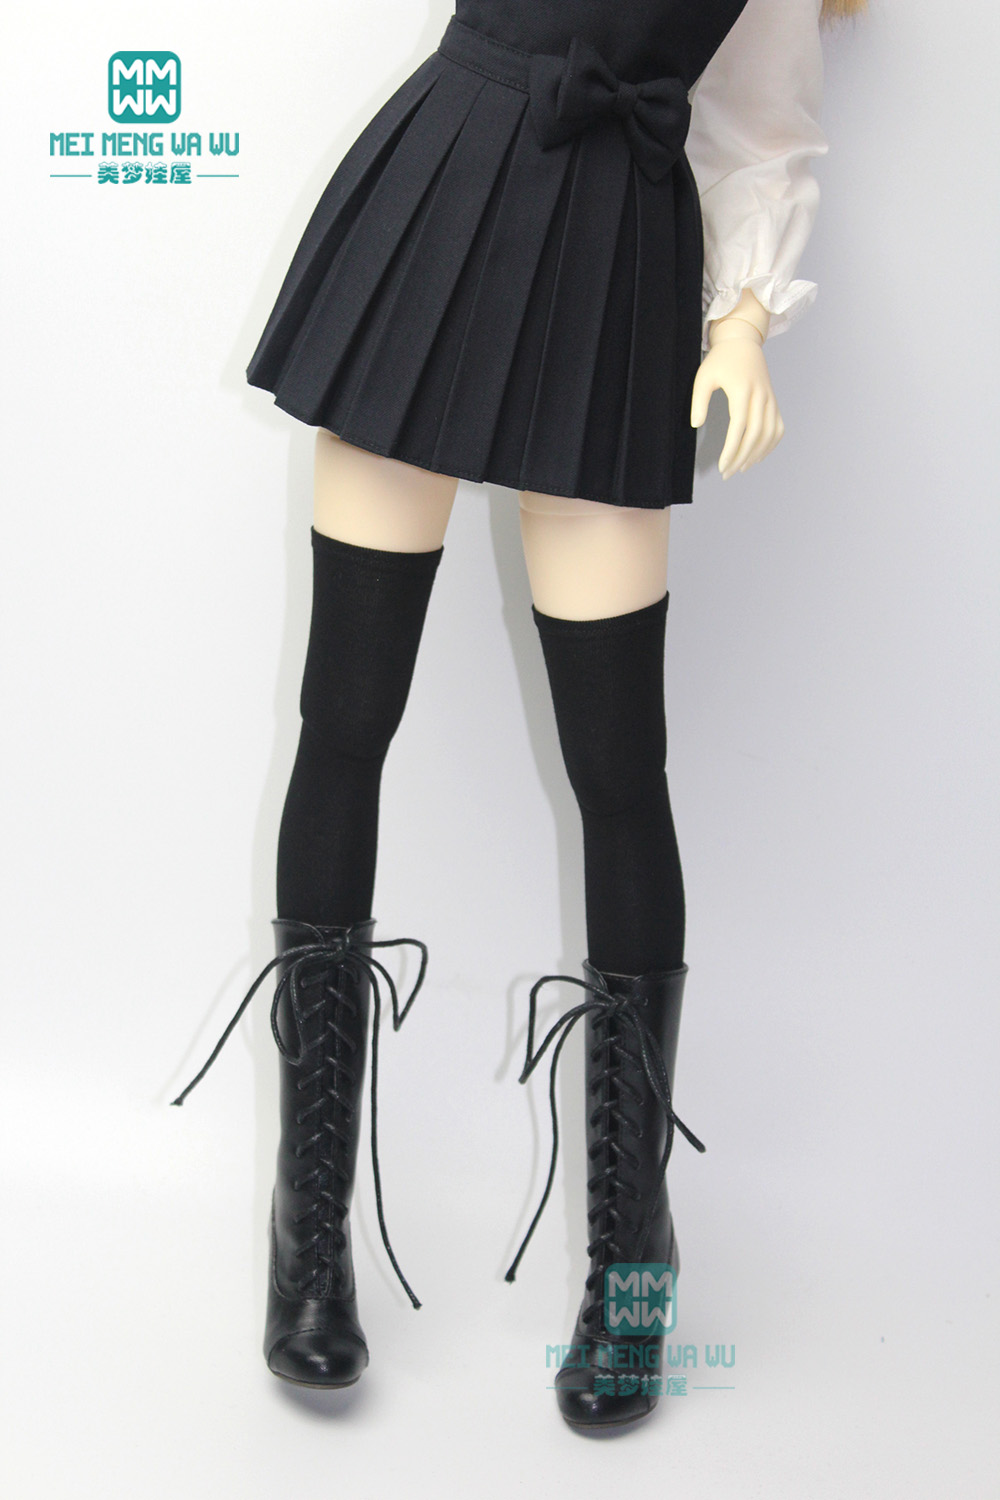 <font><b>BJD</b></font> accessories fashion black stockings for 27-60cm <font><b>1/3</b></font> 1/4 /1/6 <font><b>BJD</b></font> DD SD doll <font><b>clothes</b></font> image